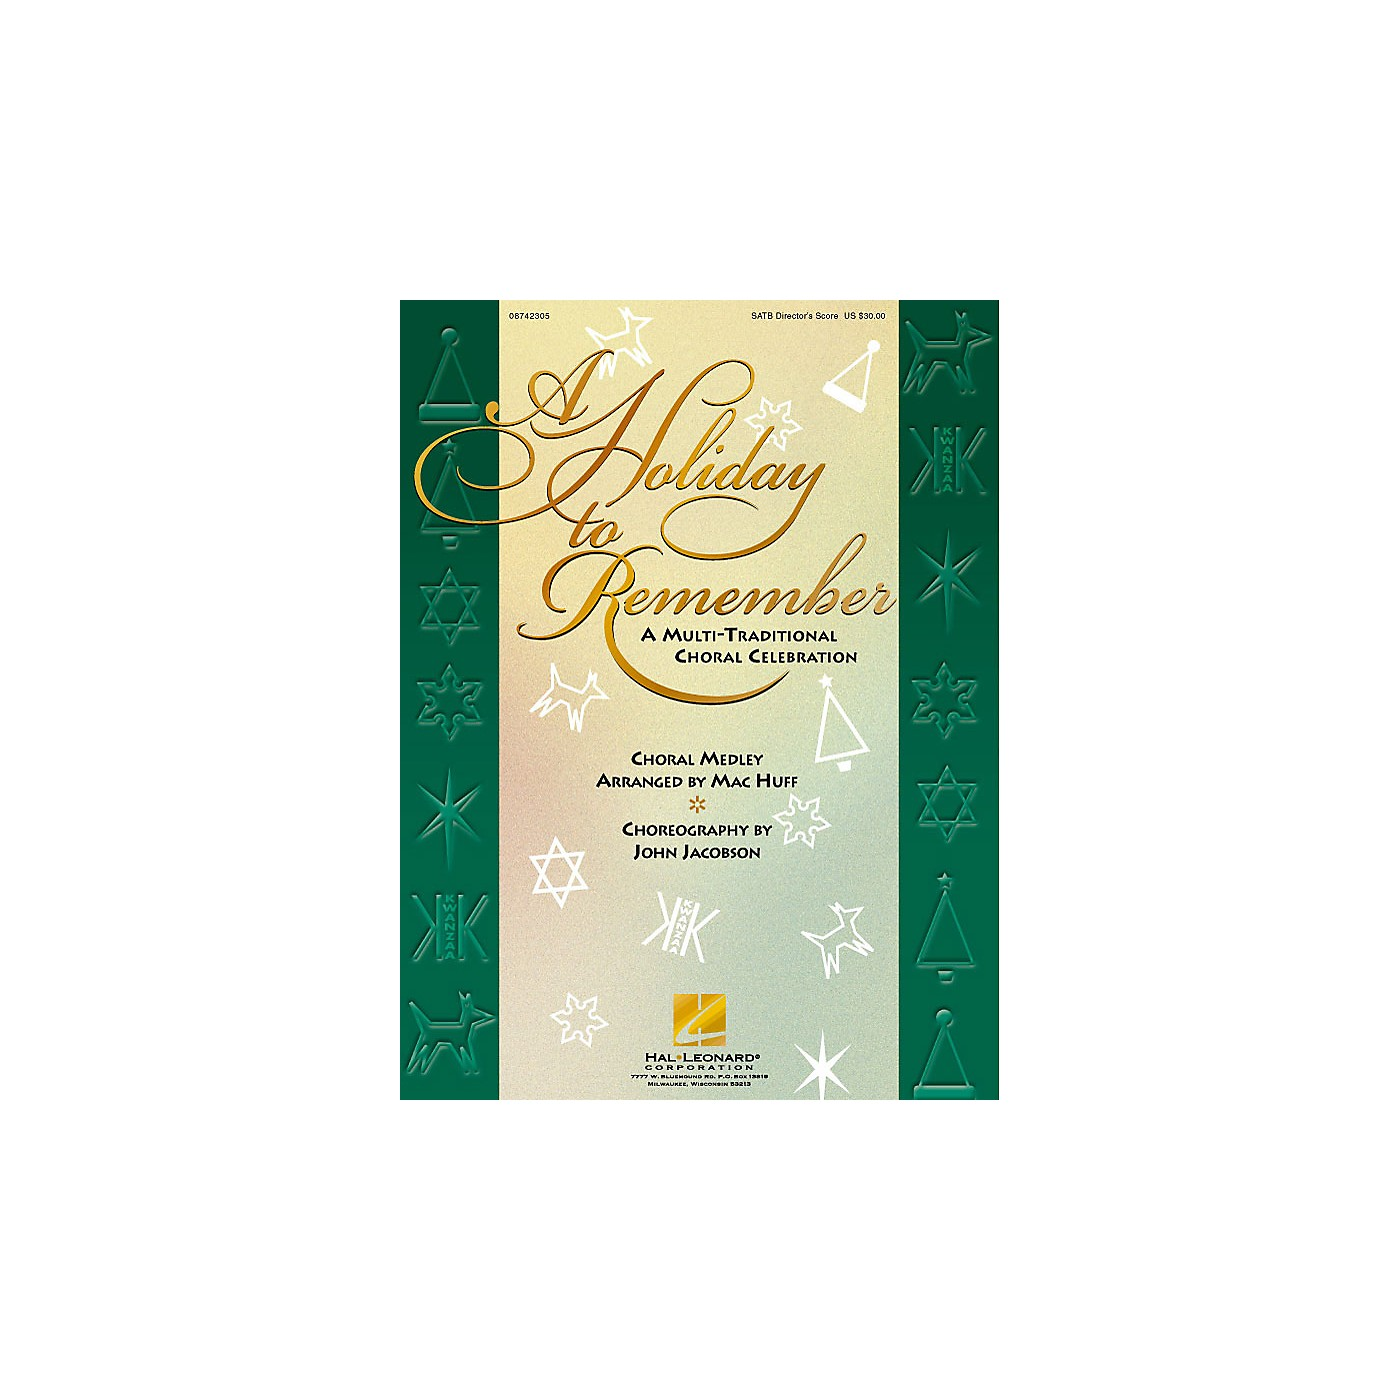 Hal Leonard A Holiday to Remember - A Multi-Traditional Choral Celebration (Medley) SATB Score arranged by Mac Huff thumbnail